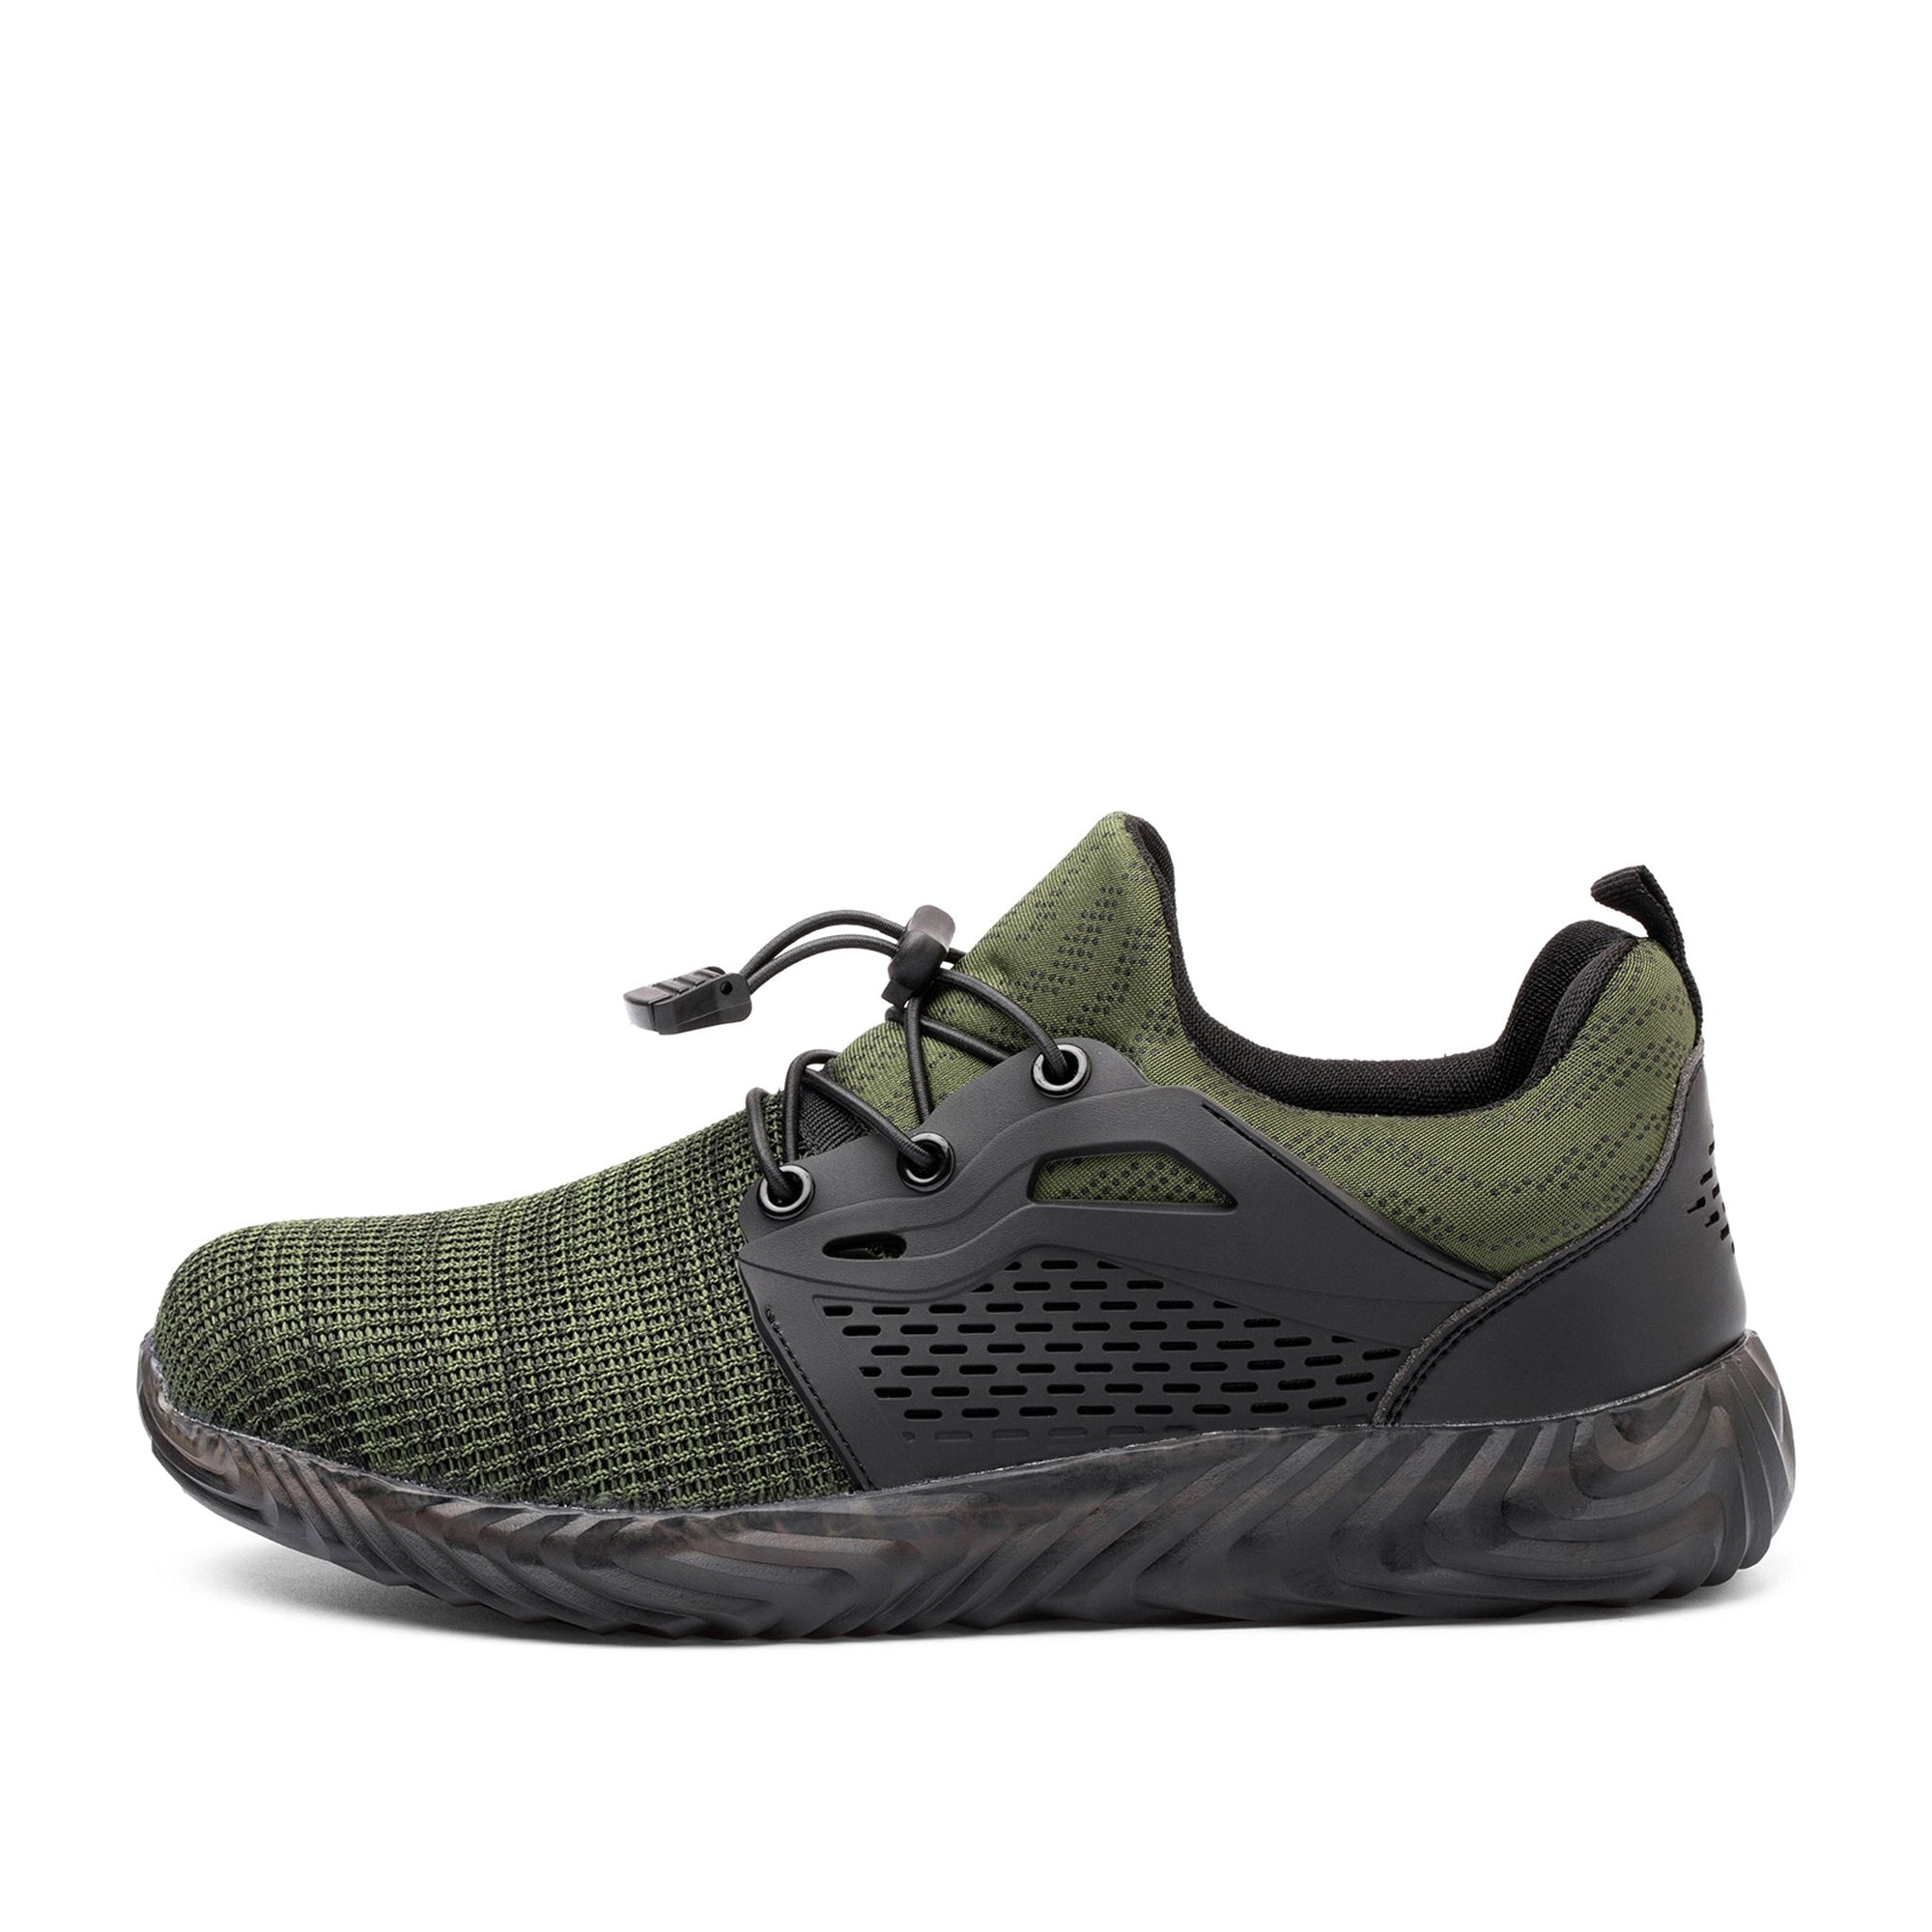 Ryder 1.5 Green - Indestructible Shoes